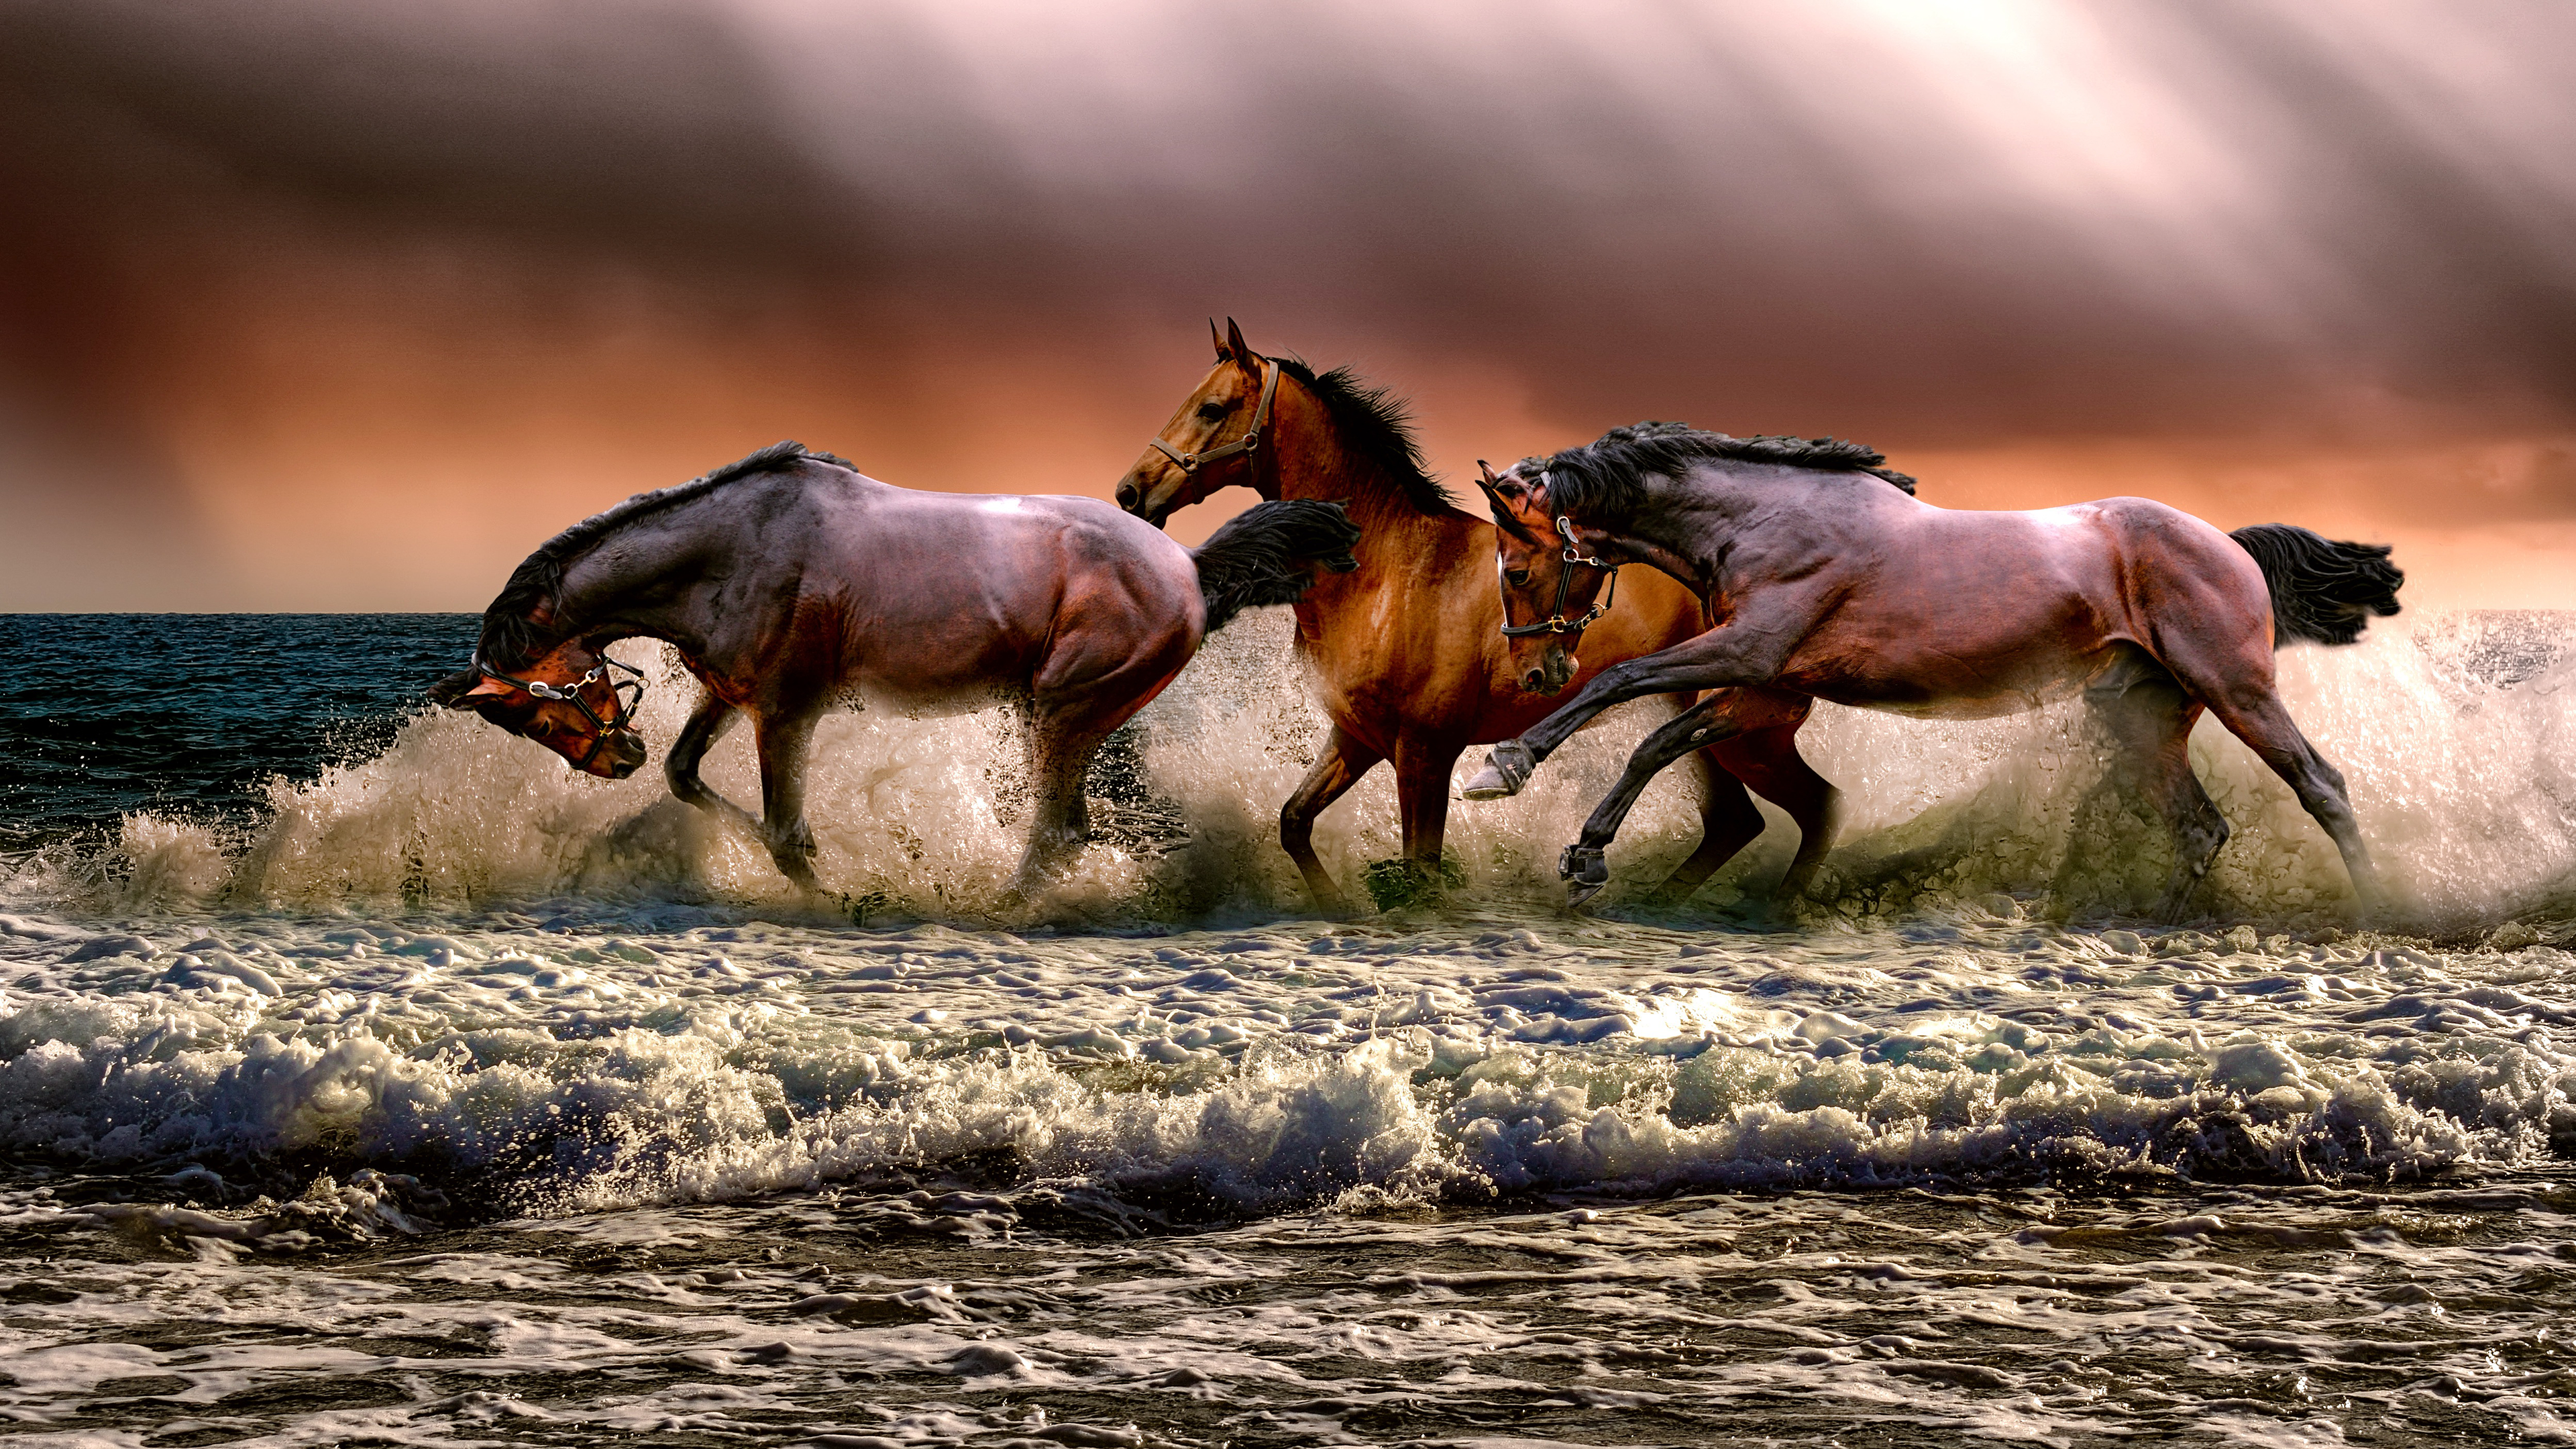 Running Horses Wallpaper Laptop Wallpaper 4k Download 429625 Hd Wallpaper Backgrounds Download